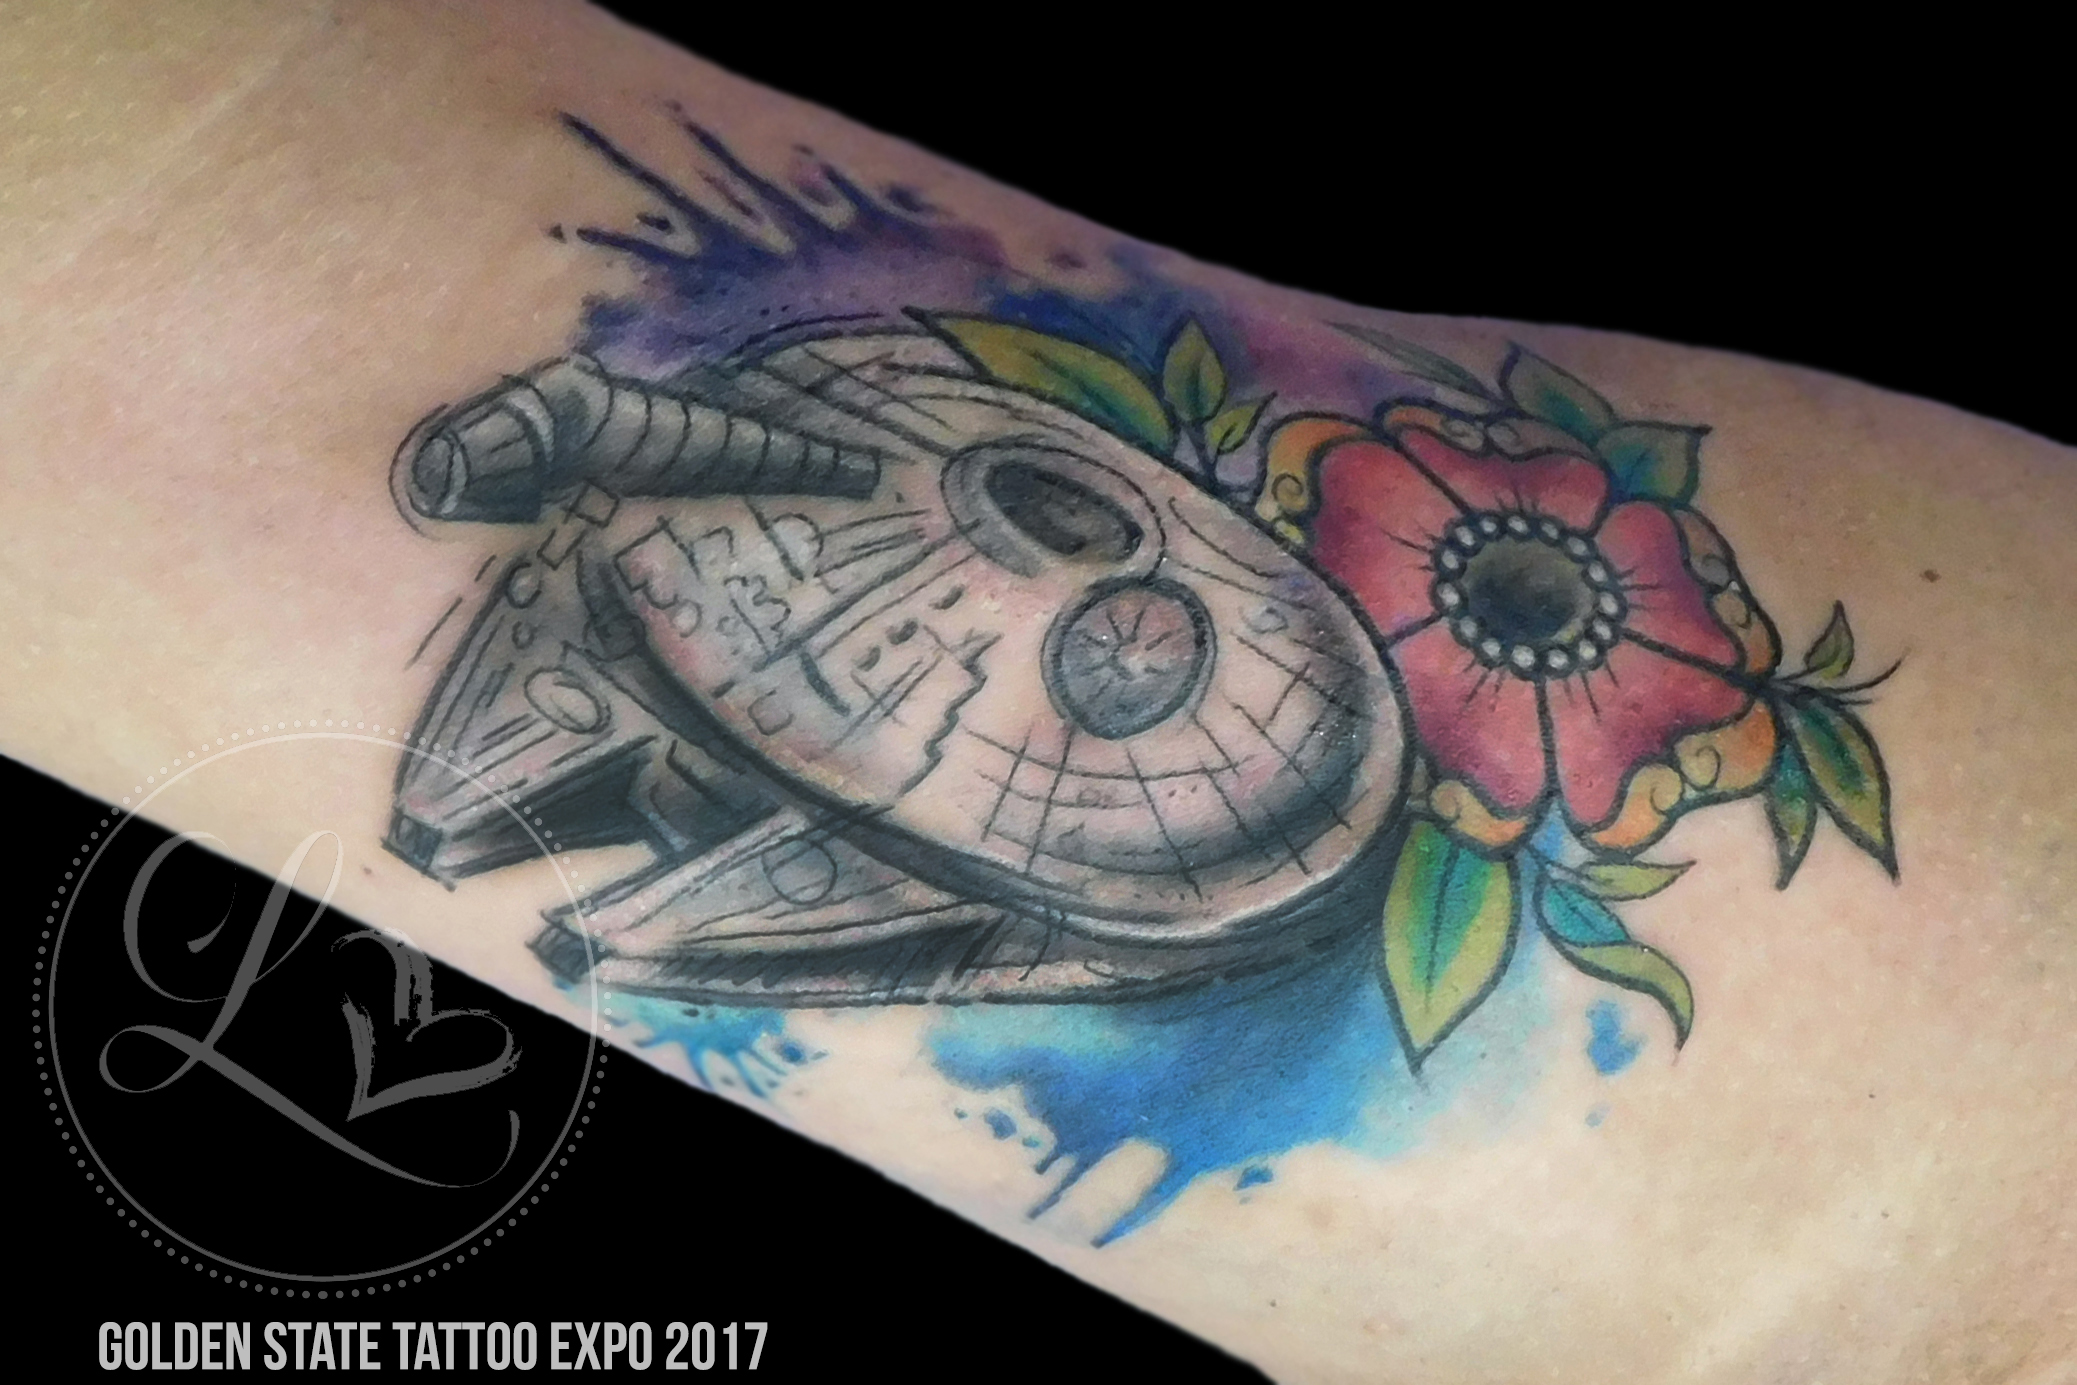 Watercolor Star Wars millenium falcon tattoo with flowers